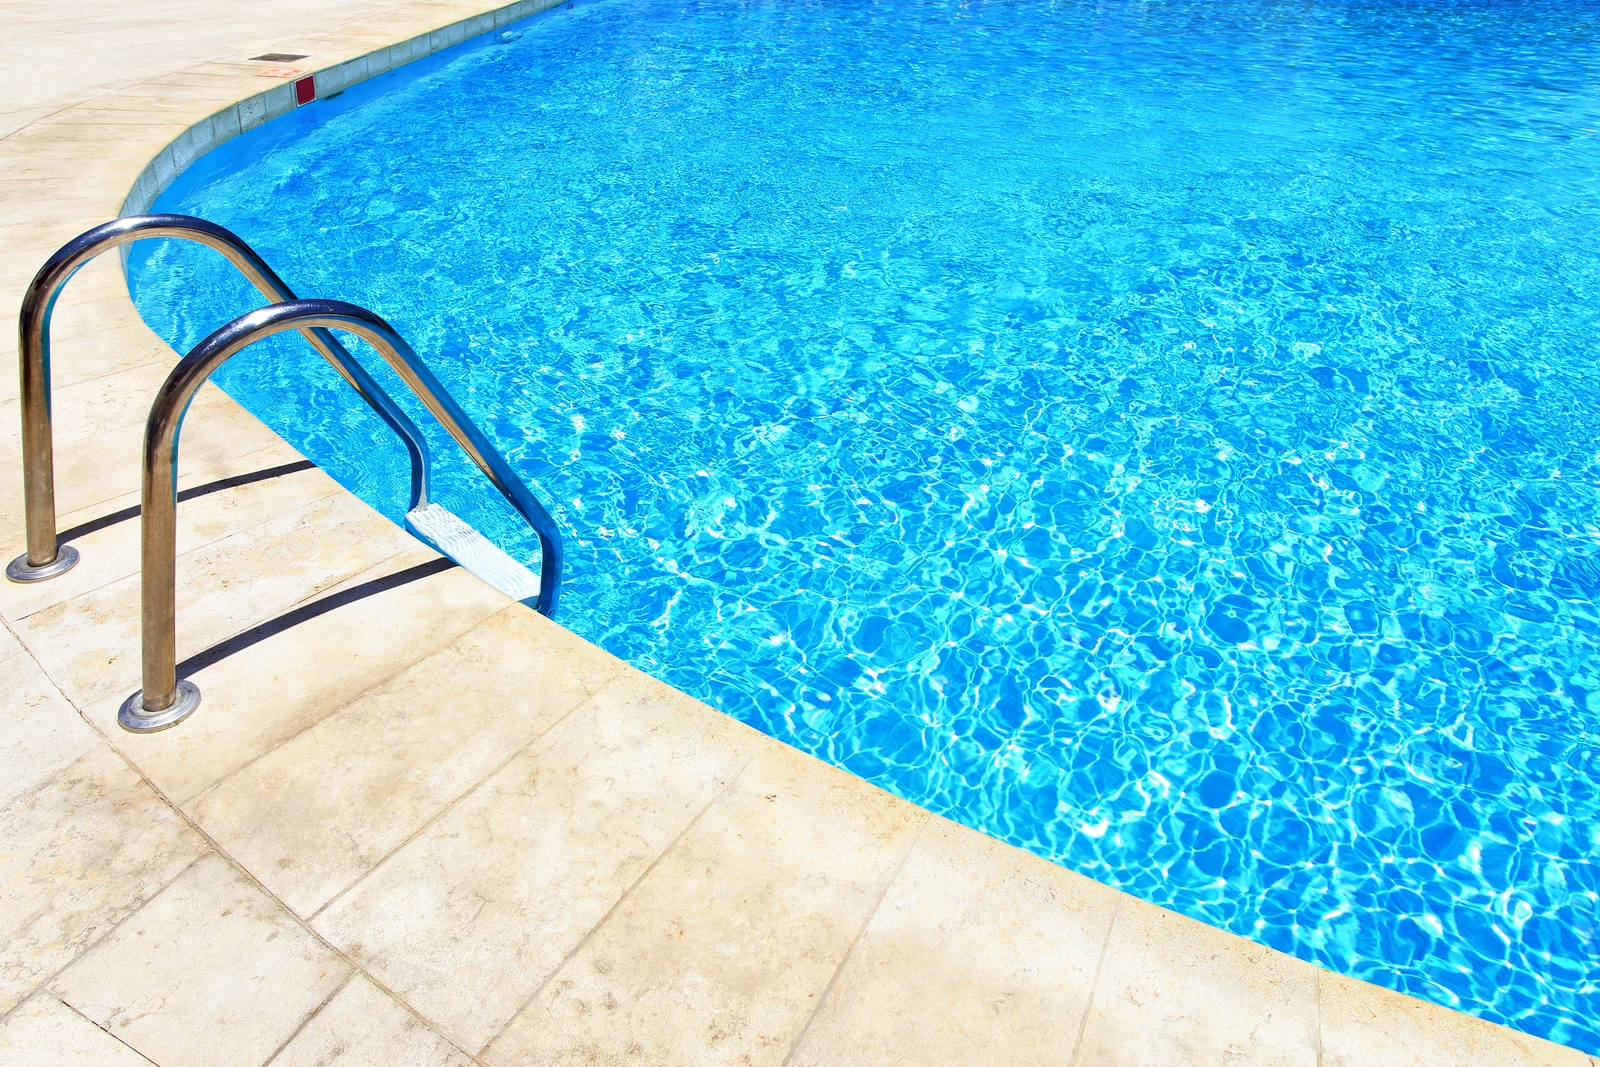 Certified Pool And Spa Operator Tips When Should I Open My Pool